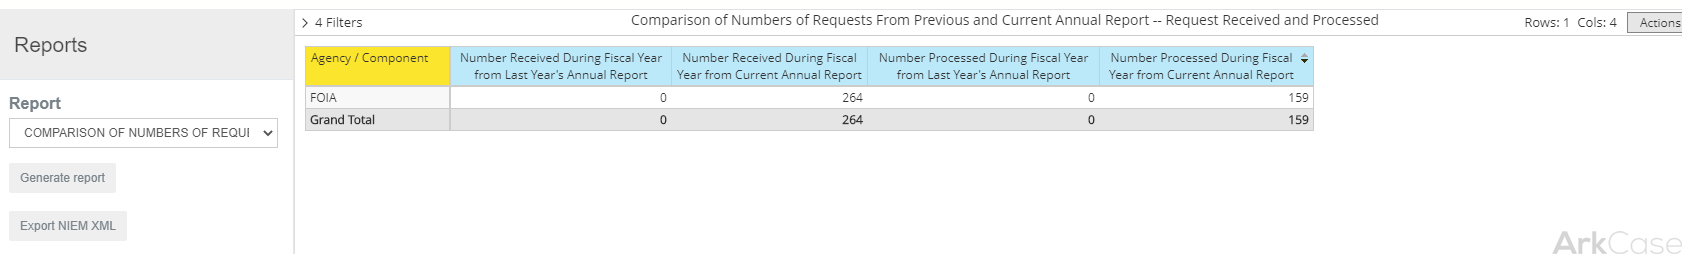 Comparison of Numbers of Requests From Previous and Current Annual Report -- Request Received and Processed